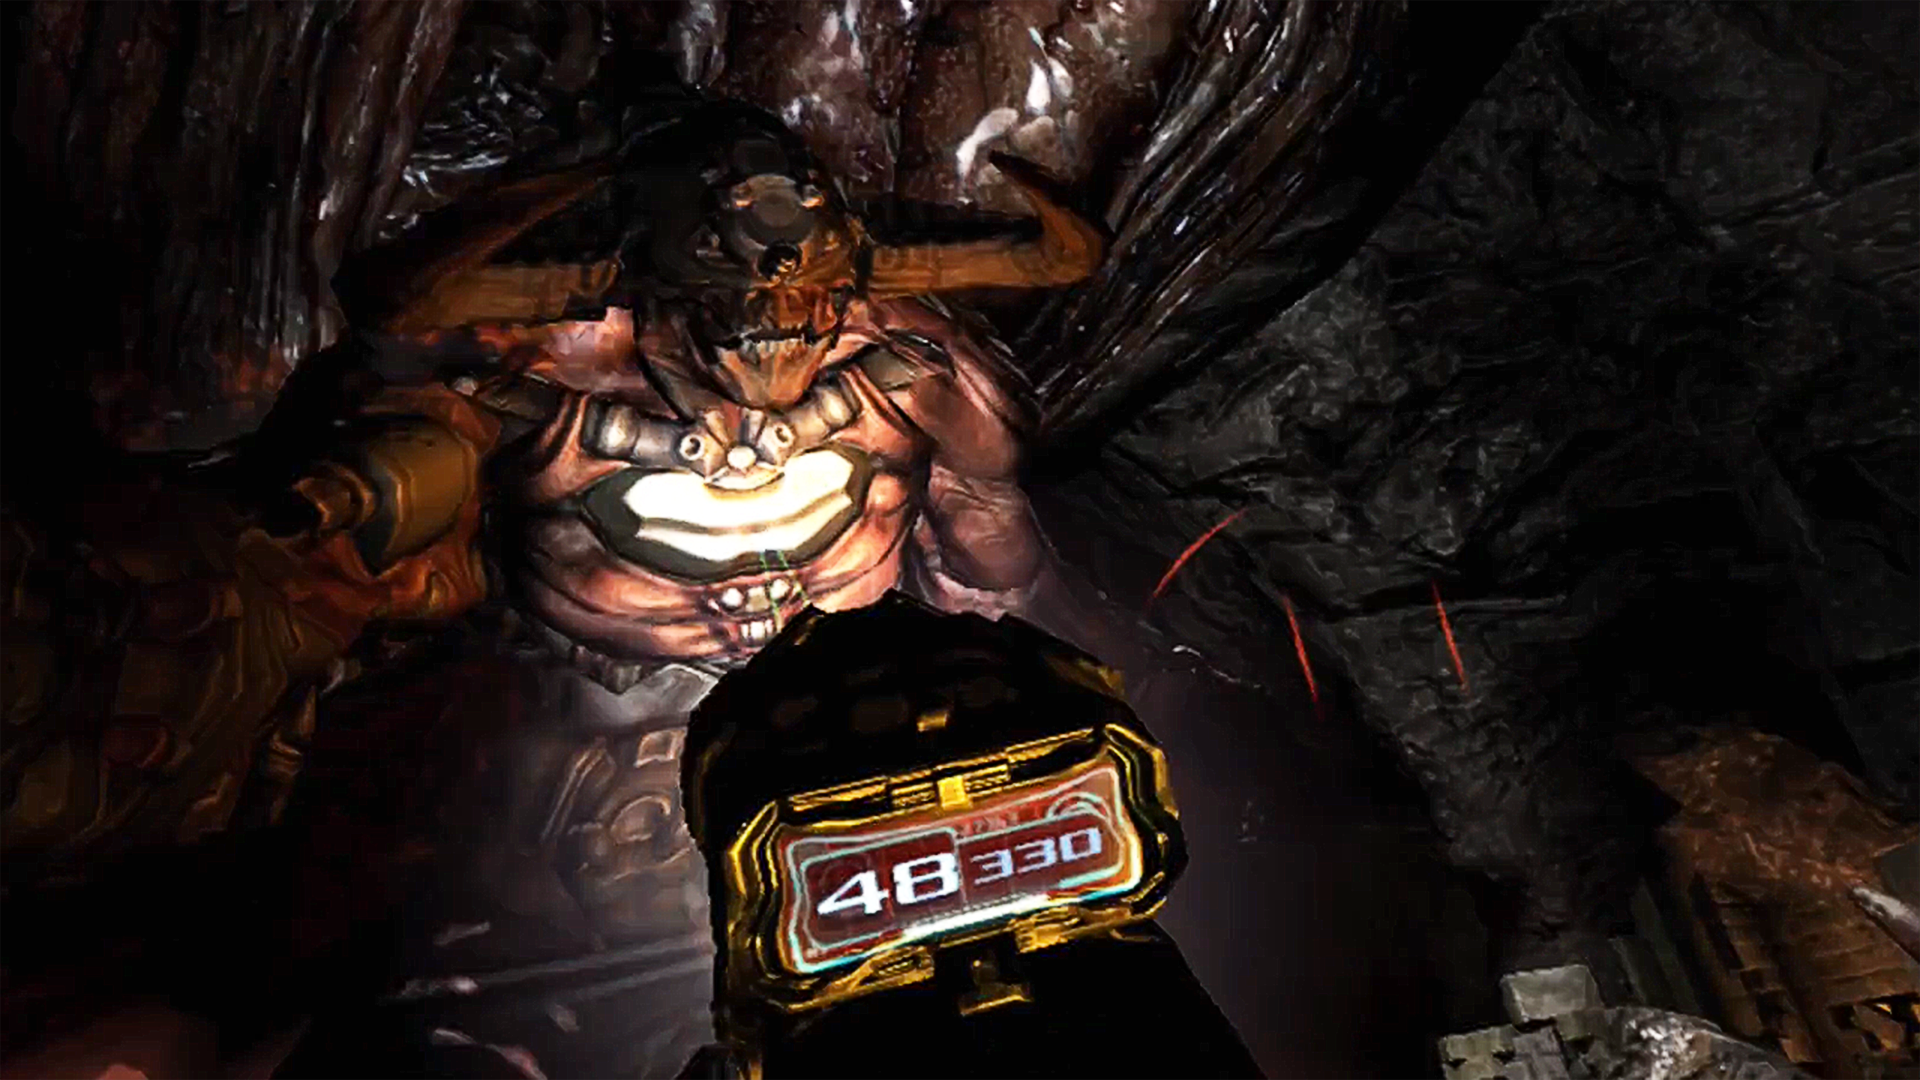 Doom 3: VR Edition Heading To PSVR Later This Month: a VR port of id Softwork's terrifying FPS classic DOOM3 is heading to PSVR later this month.